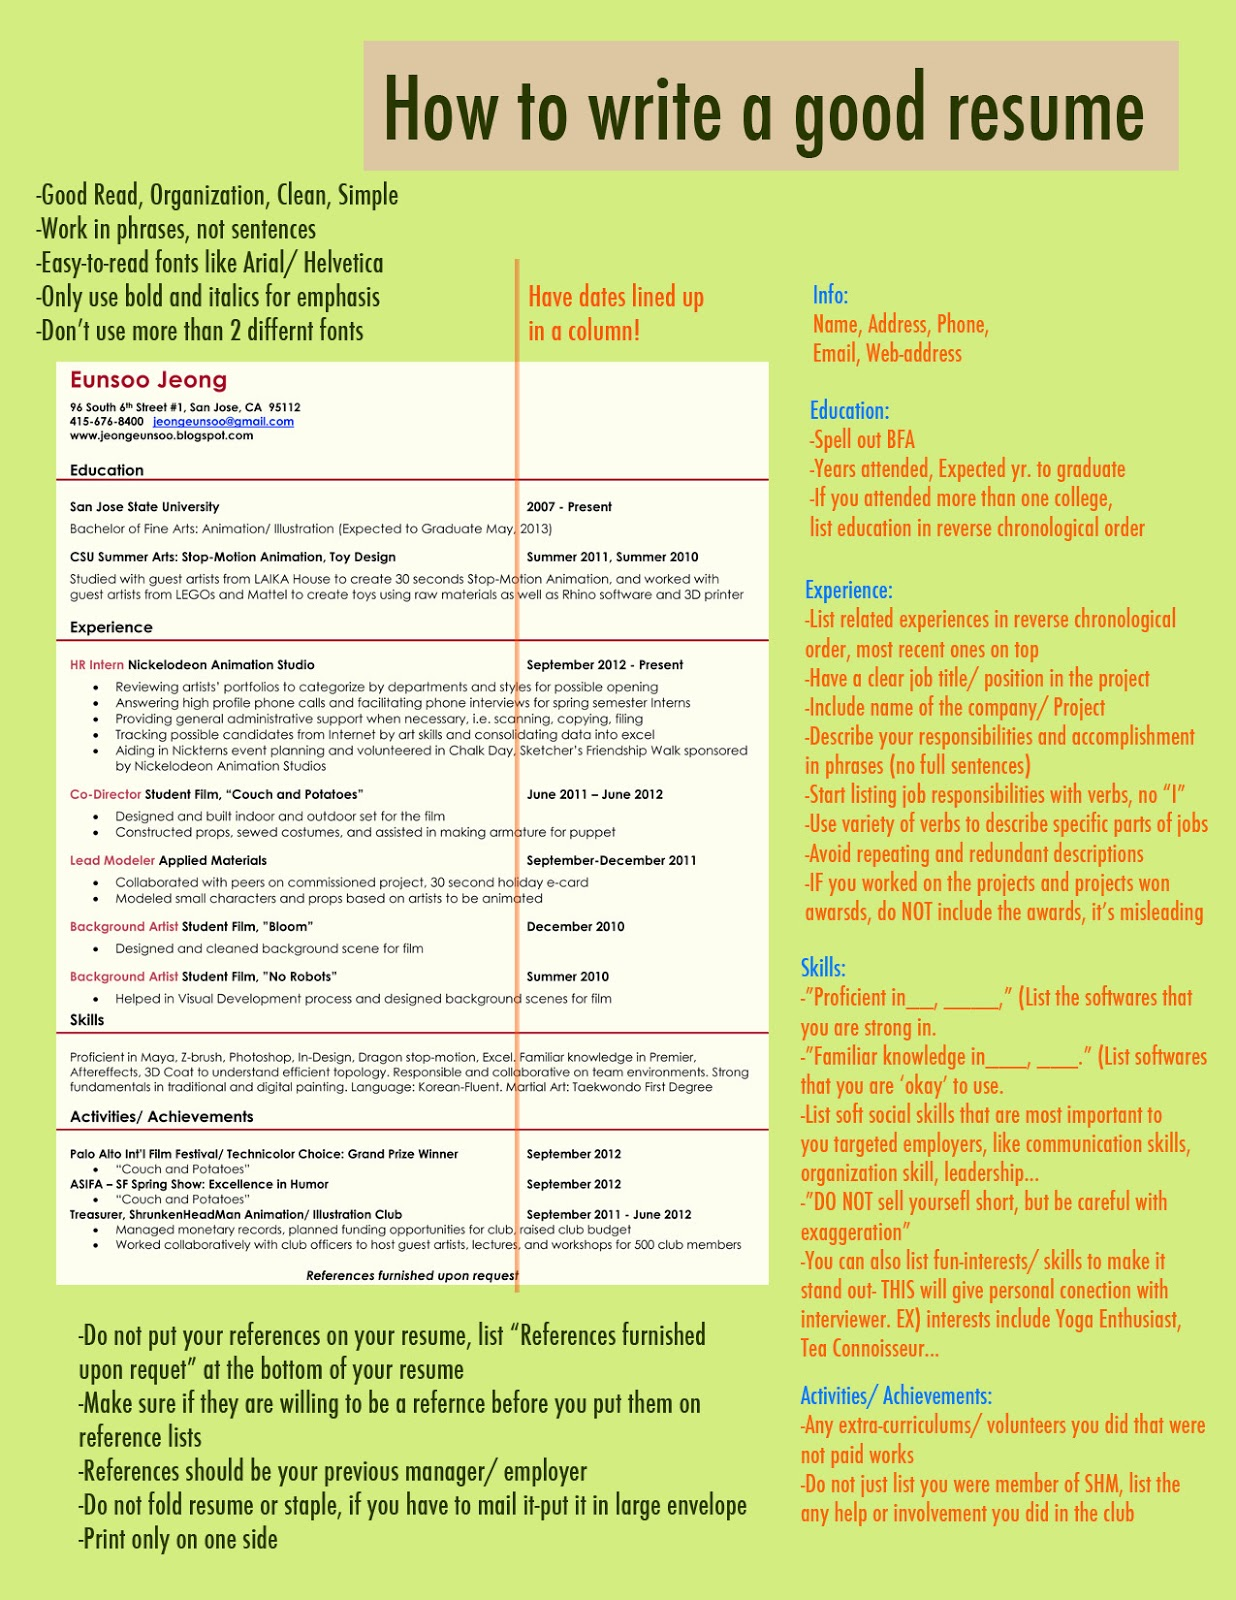 excellent resume write good resume how to a mshj7 your mom hates this resumes how to write